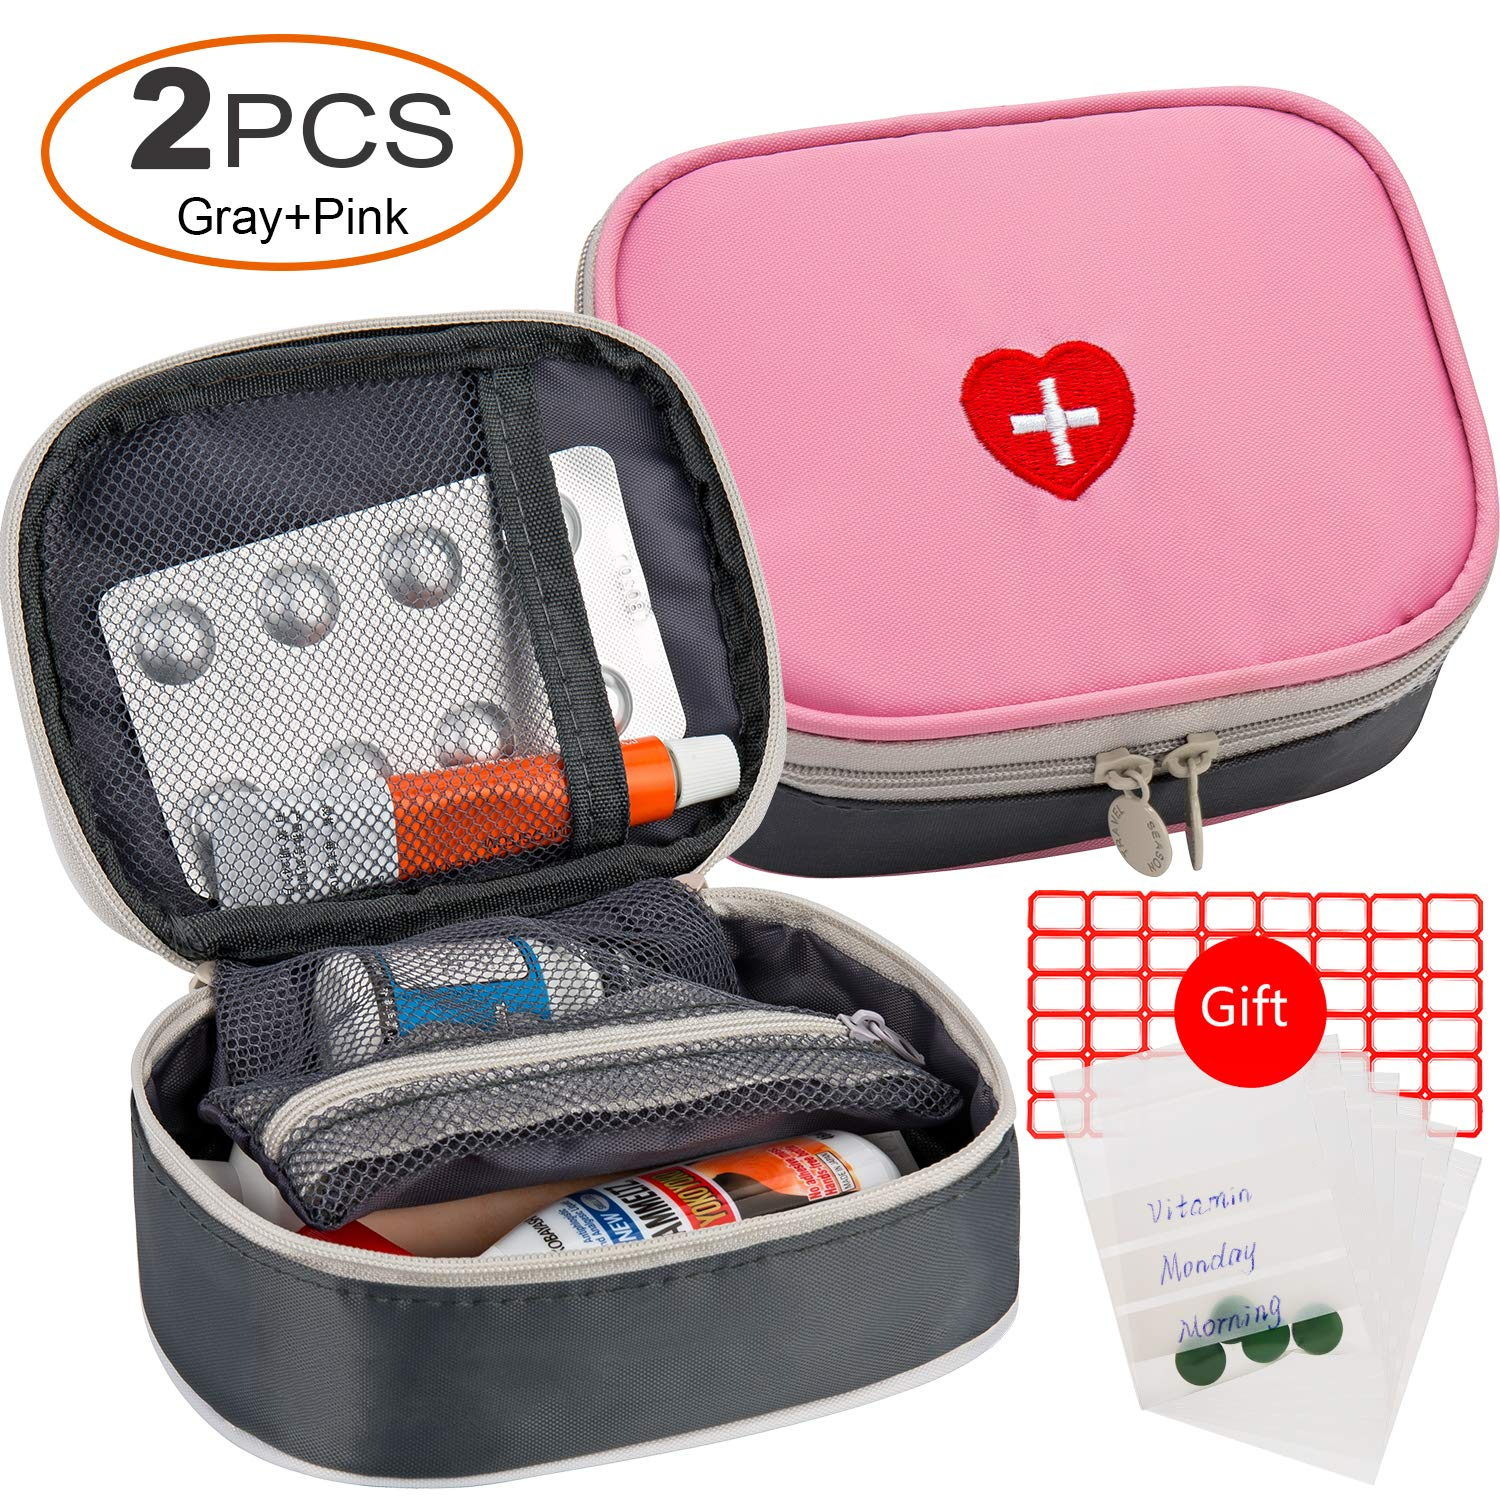 2pcs Portable Mini First Aid Kit